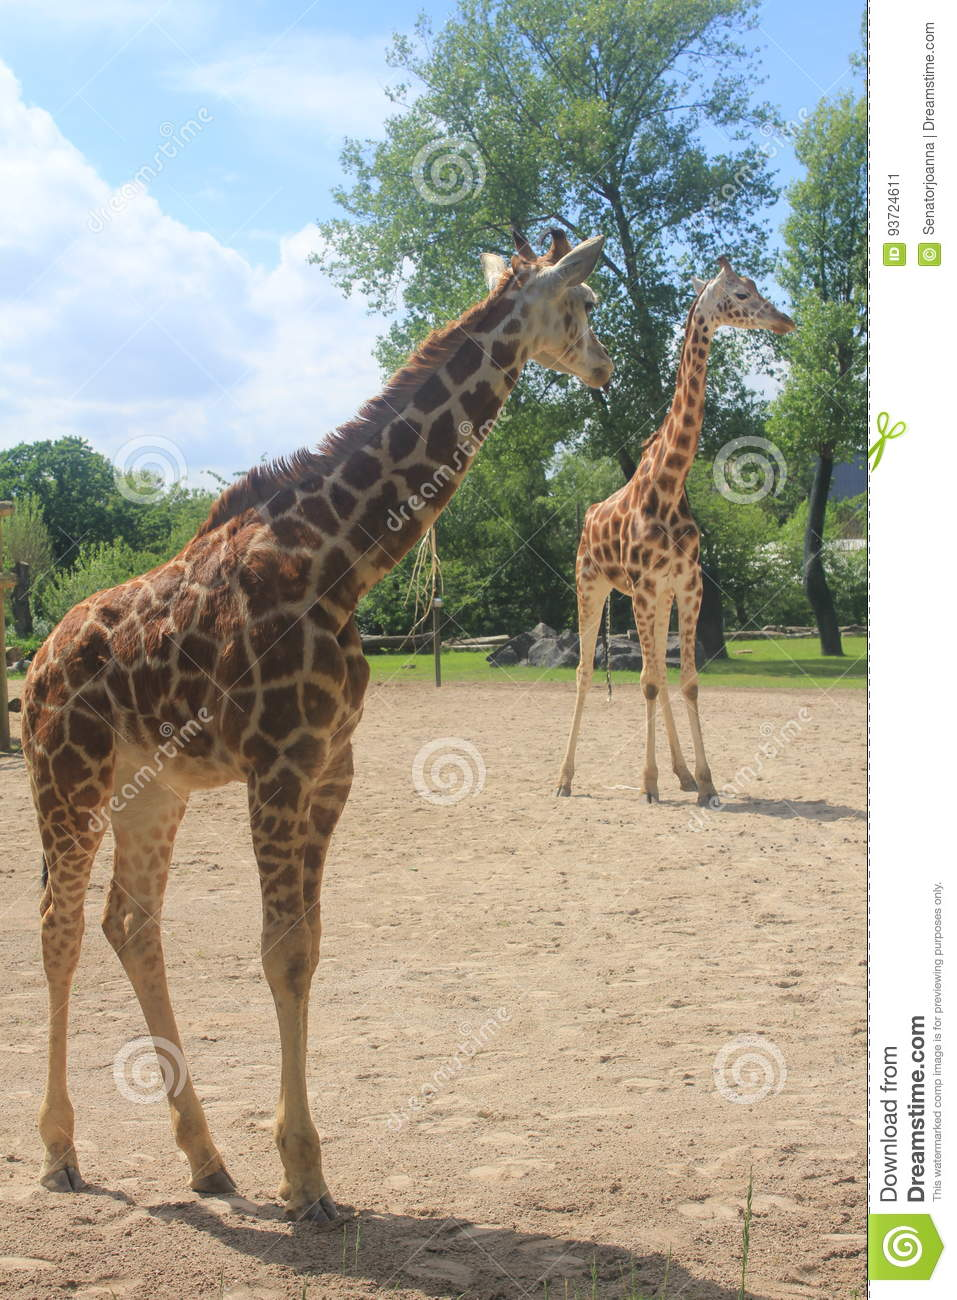 A tall giraffe in the Chester zoo